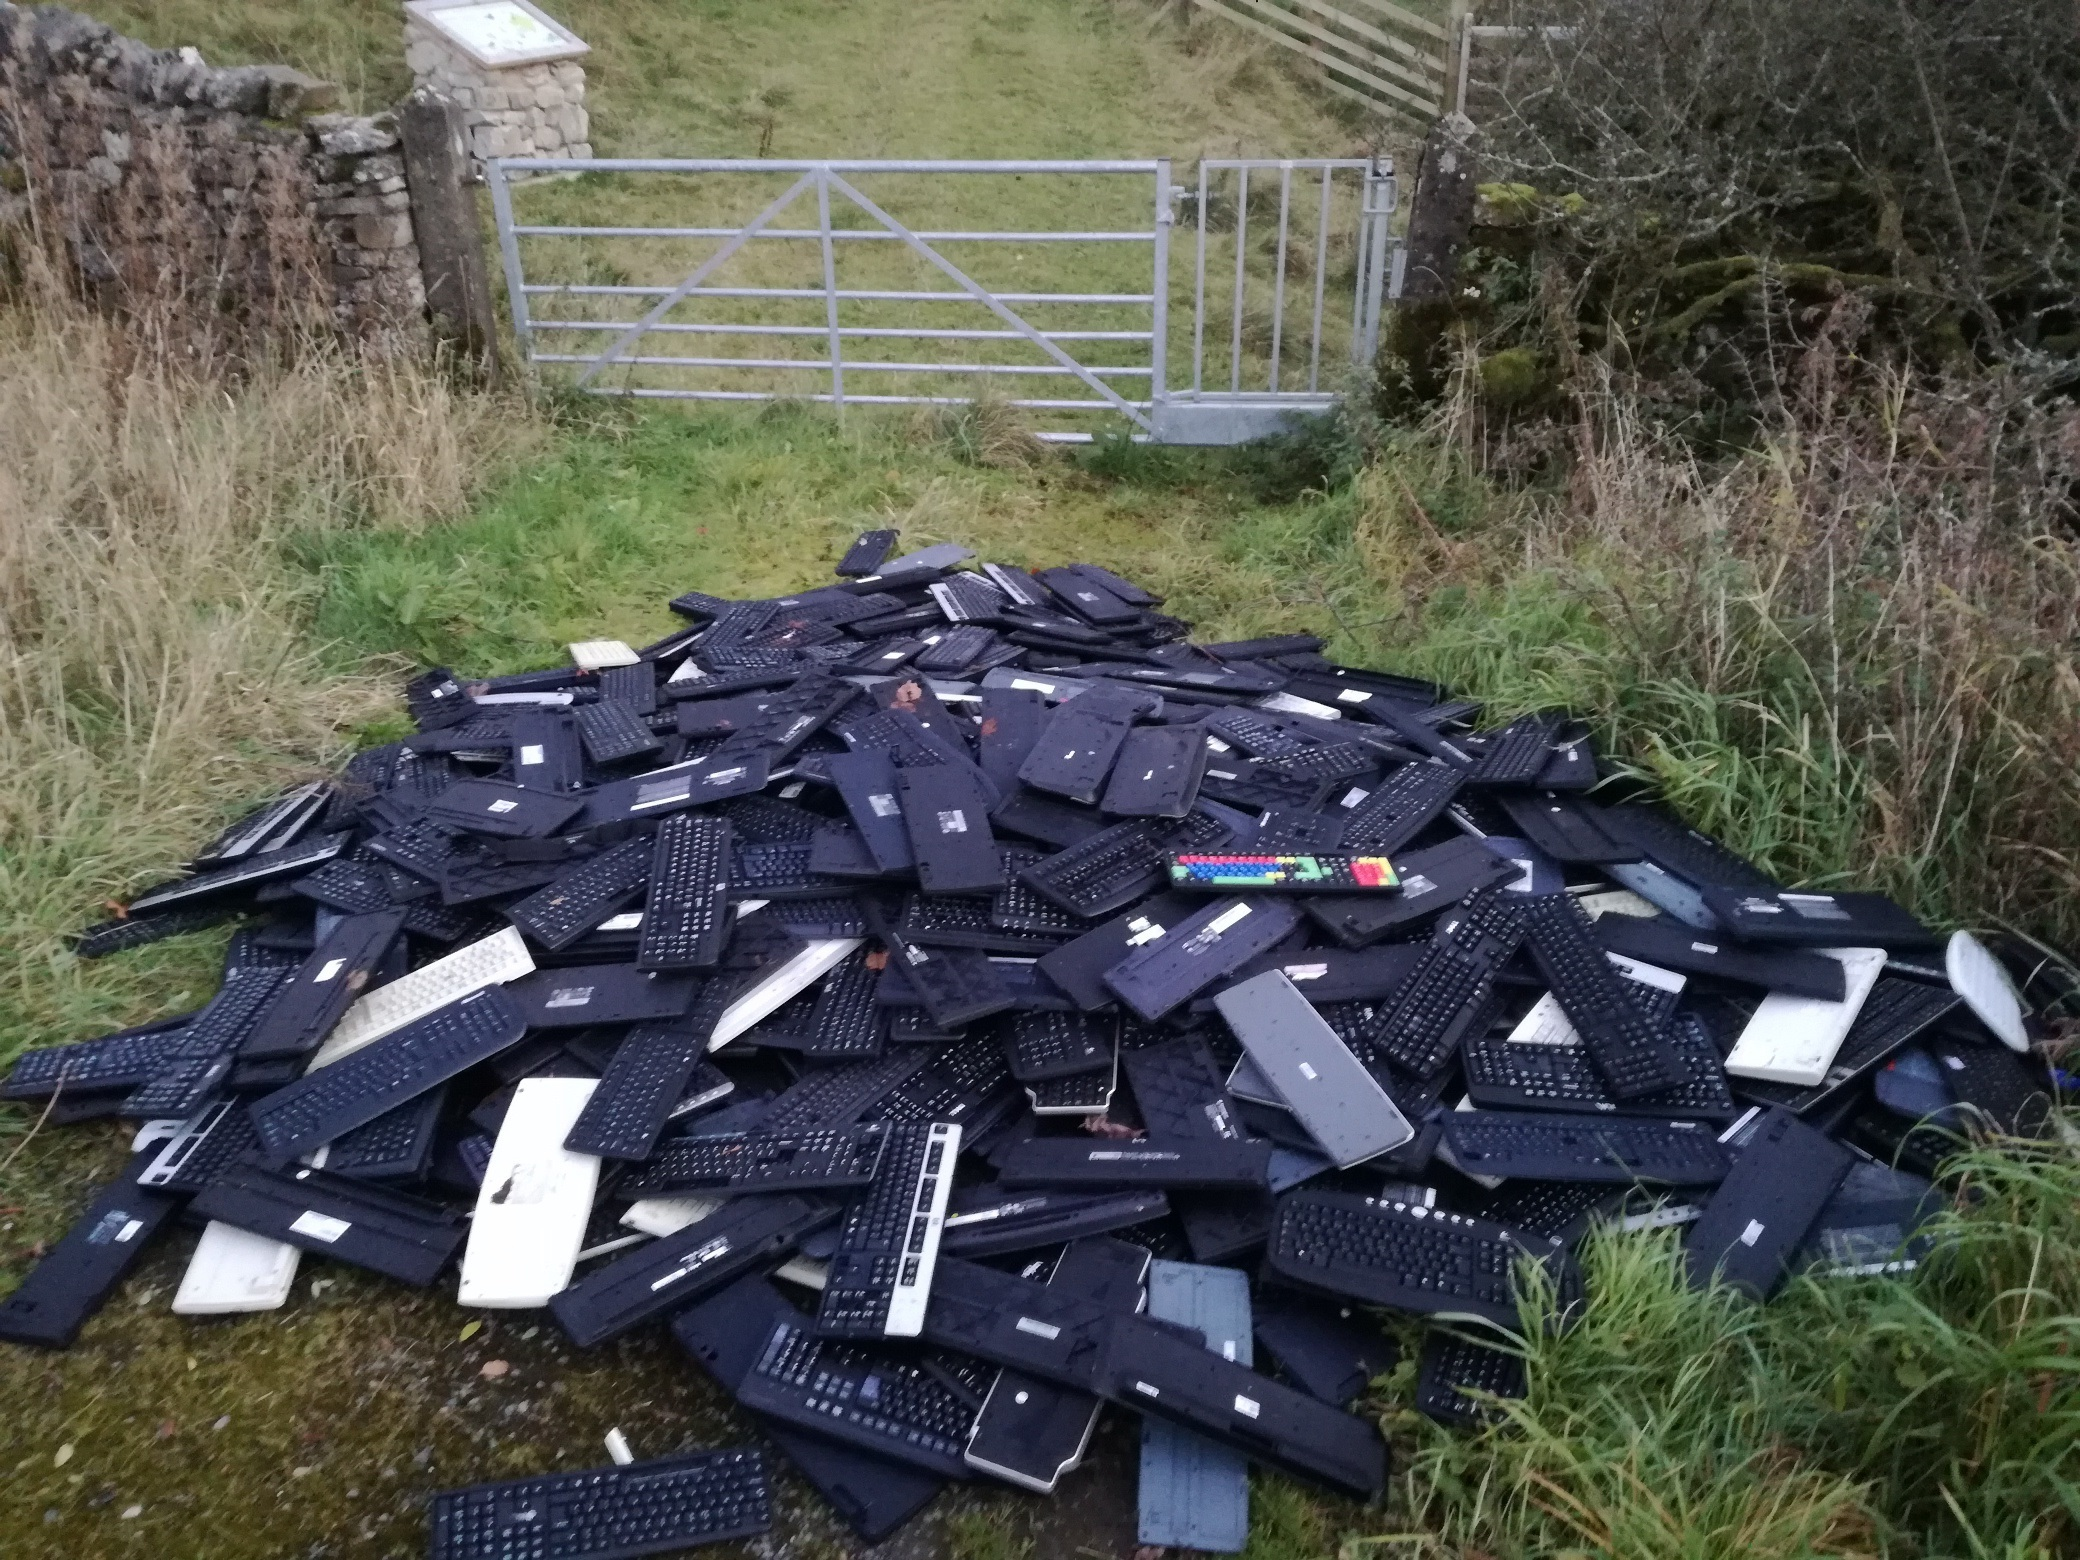 Dumped computer keyboards at Horton-in-Ribblesdale